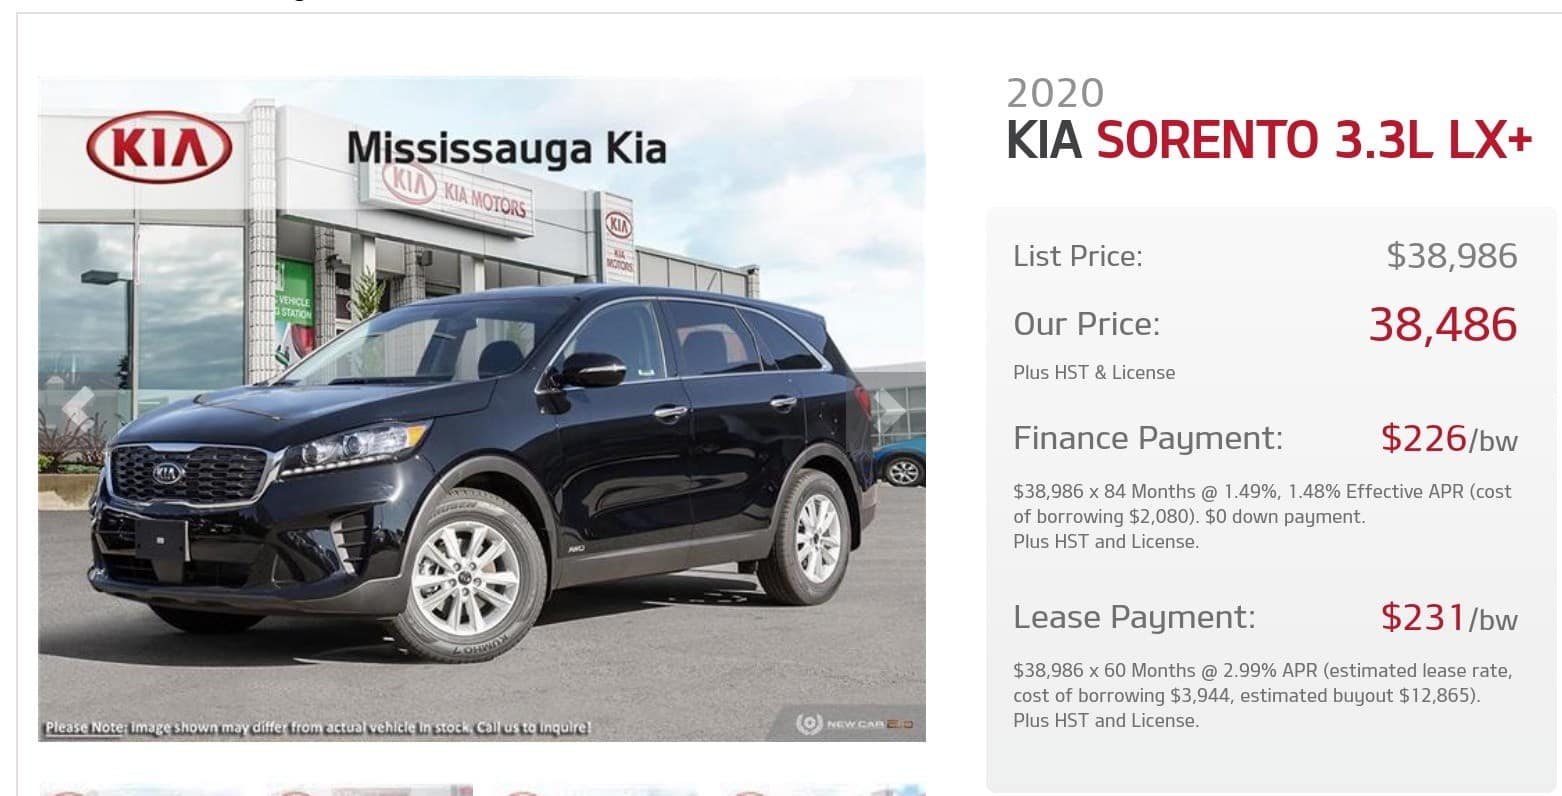 2020 Kia Sorrento is one of the best 7 seater suv lease and finance deals